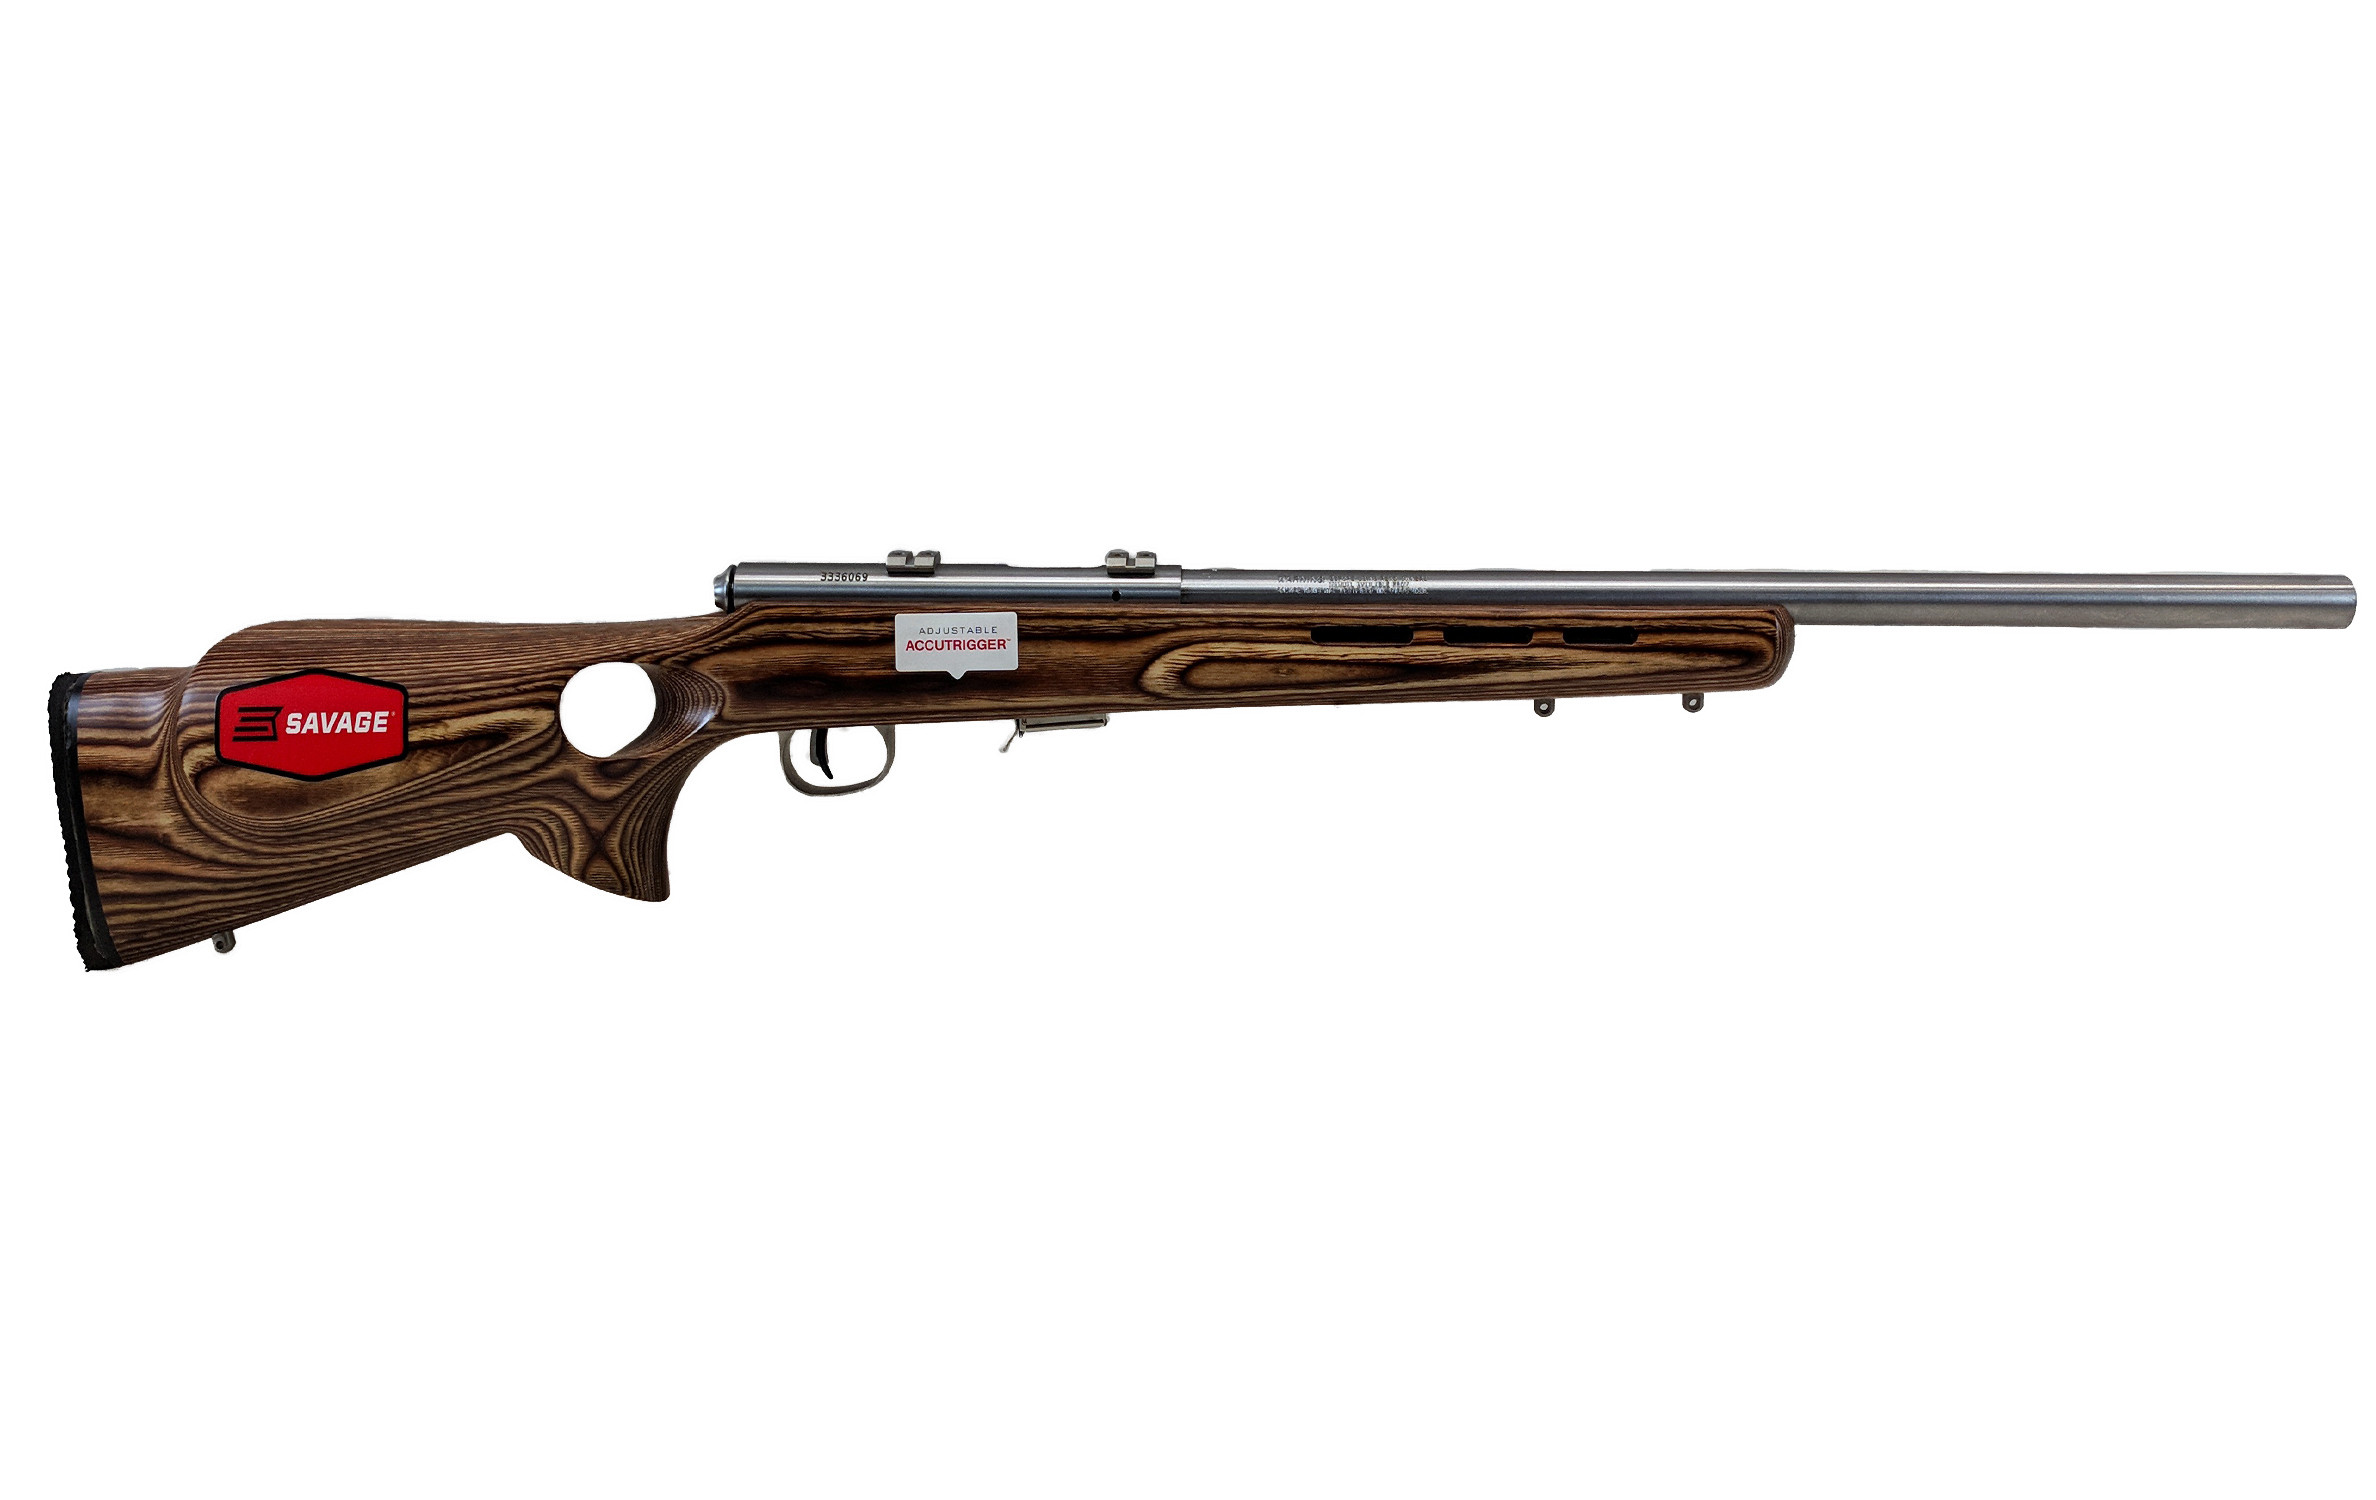 Savage 93R17 Left Hand, .17 HMR *New*